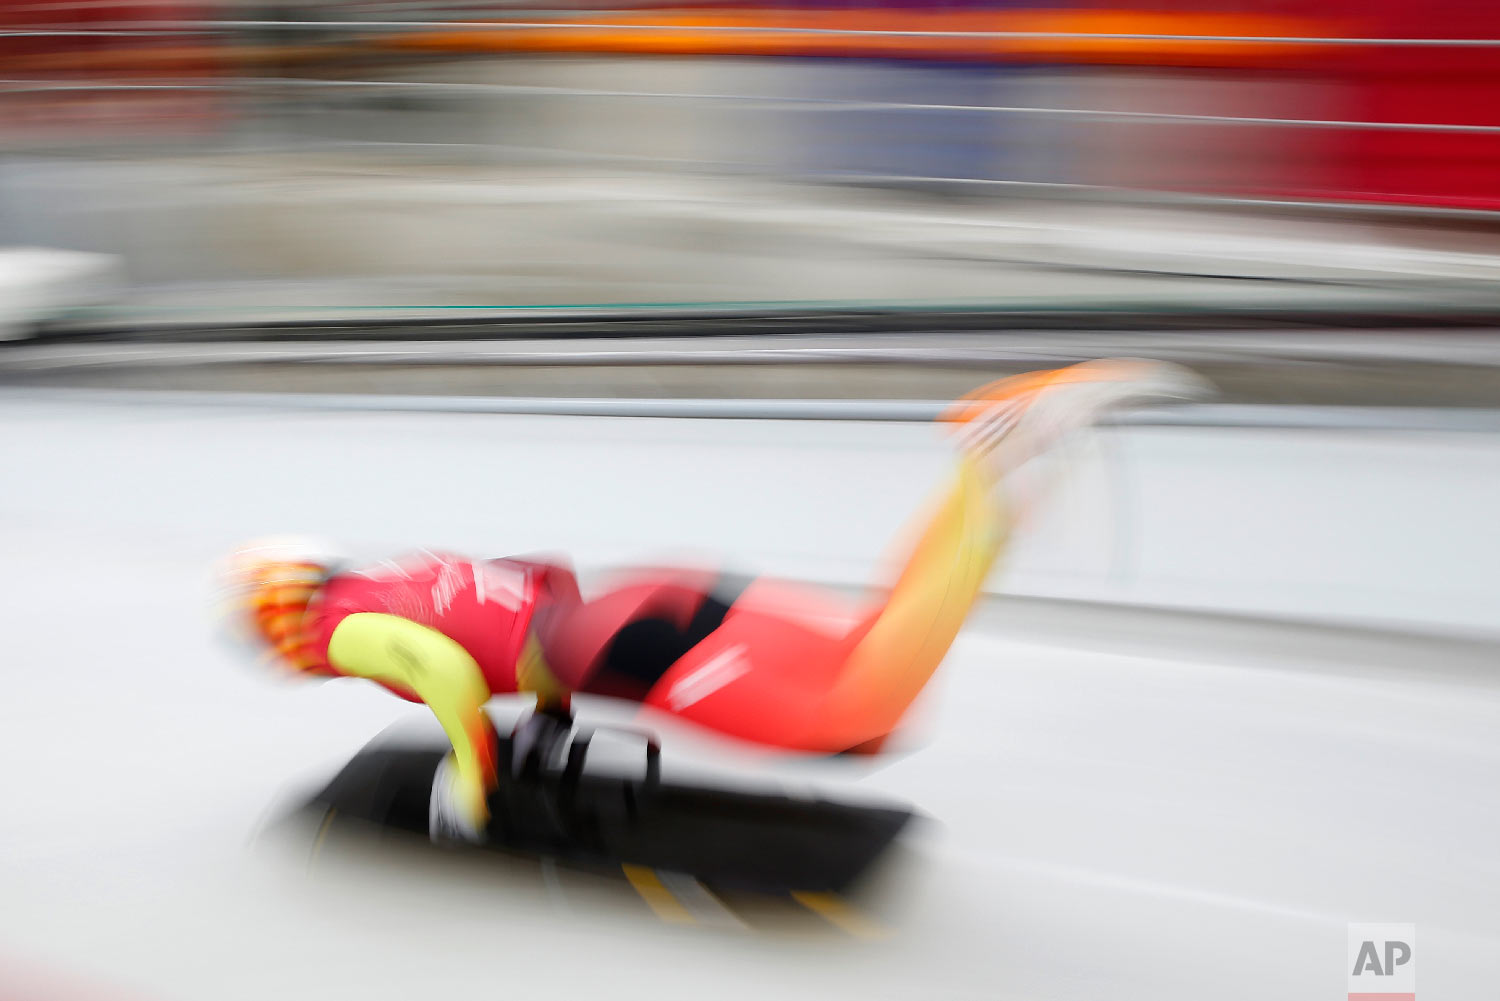 Jacqueline Loelling of Germany begins a training run for the women's skeleton at the 2018 Winter Olympics in Pyeongchang, South Korea, Wednesday, Feb. 14, 2018. (AP Photo/Patrick Semansky)